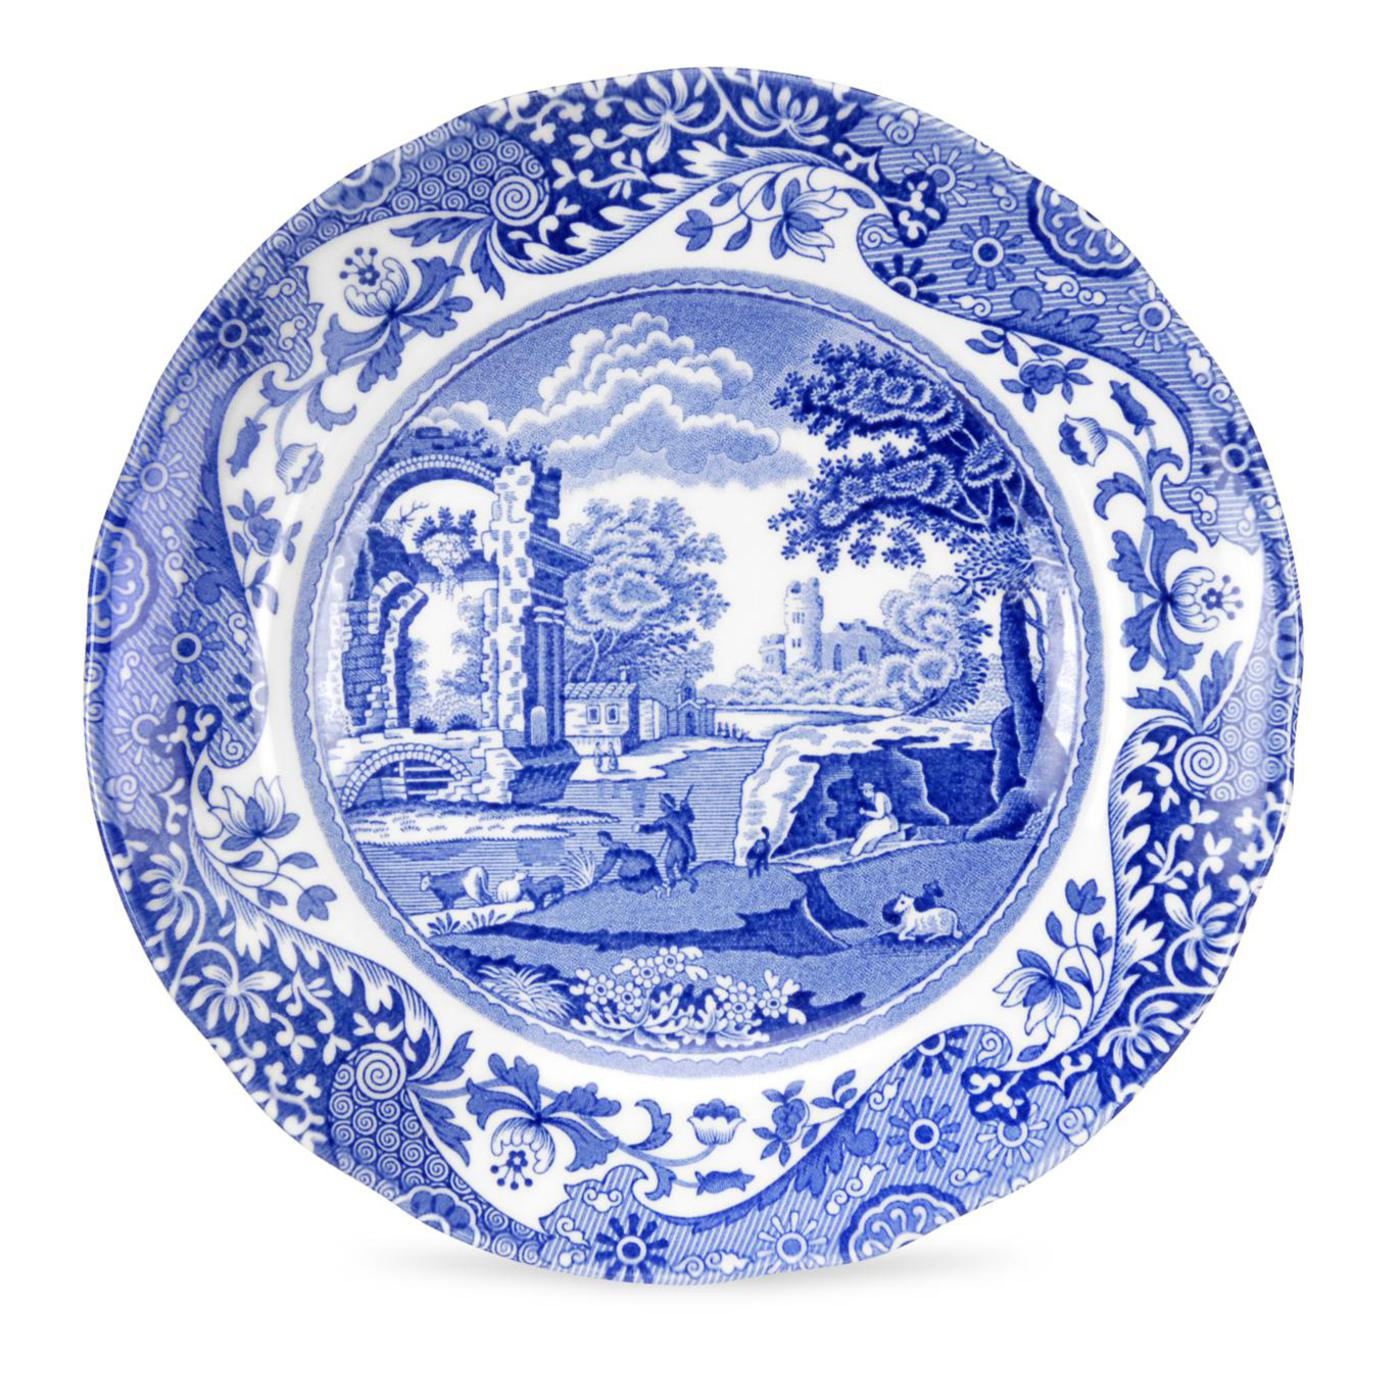 Spode Blue Italian Set of 4 Bread and Butter Plates image number 0